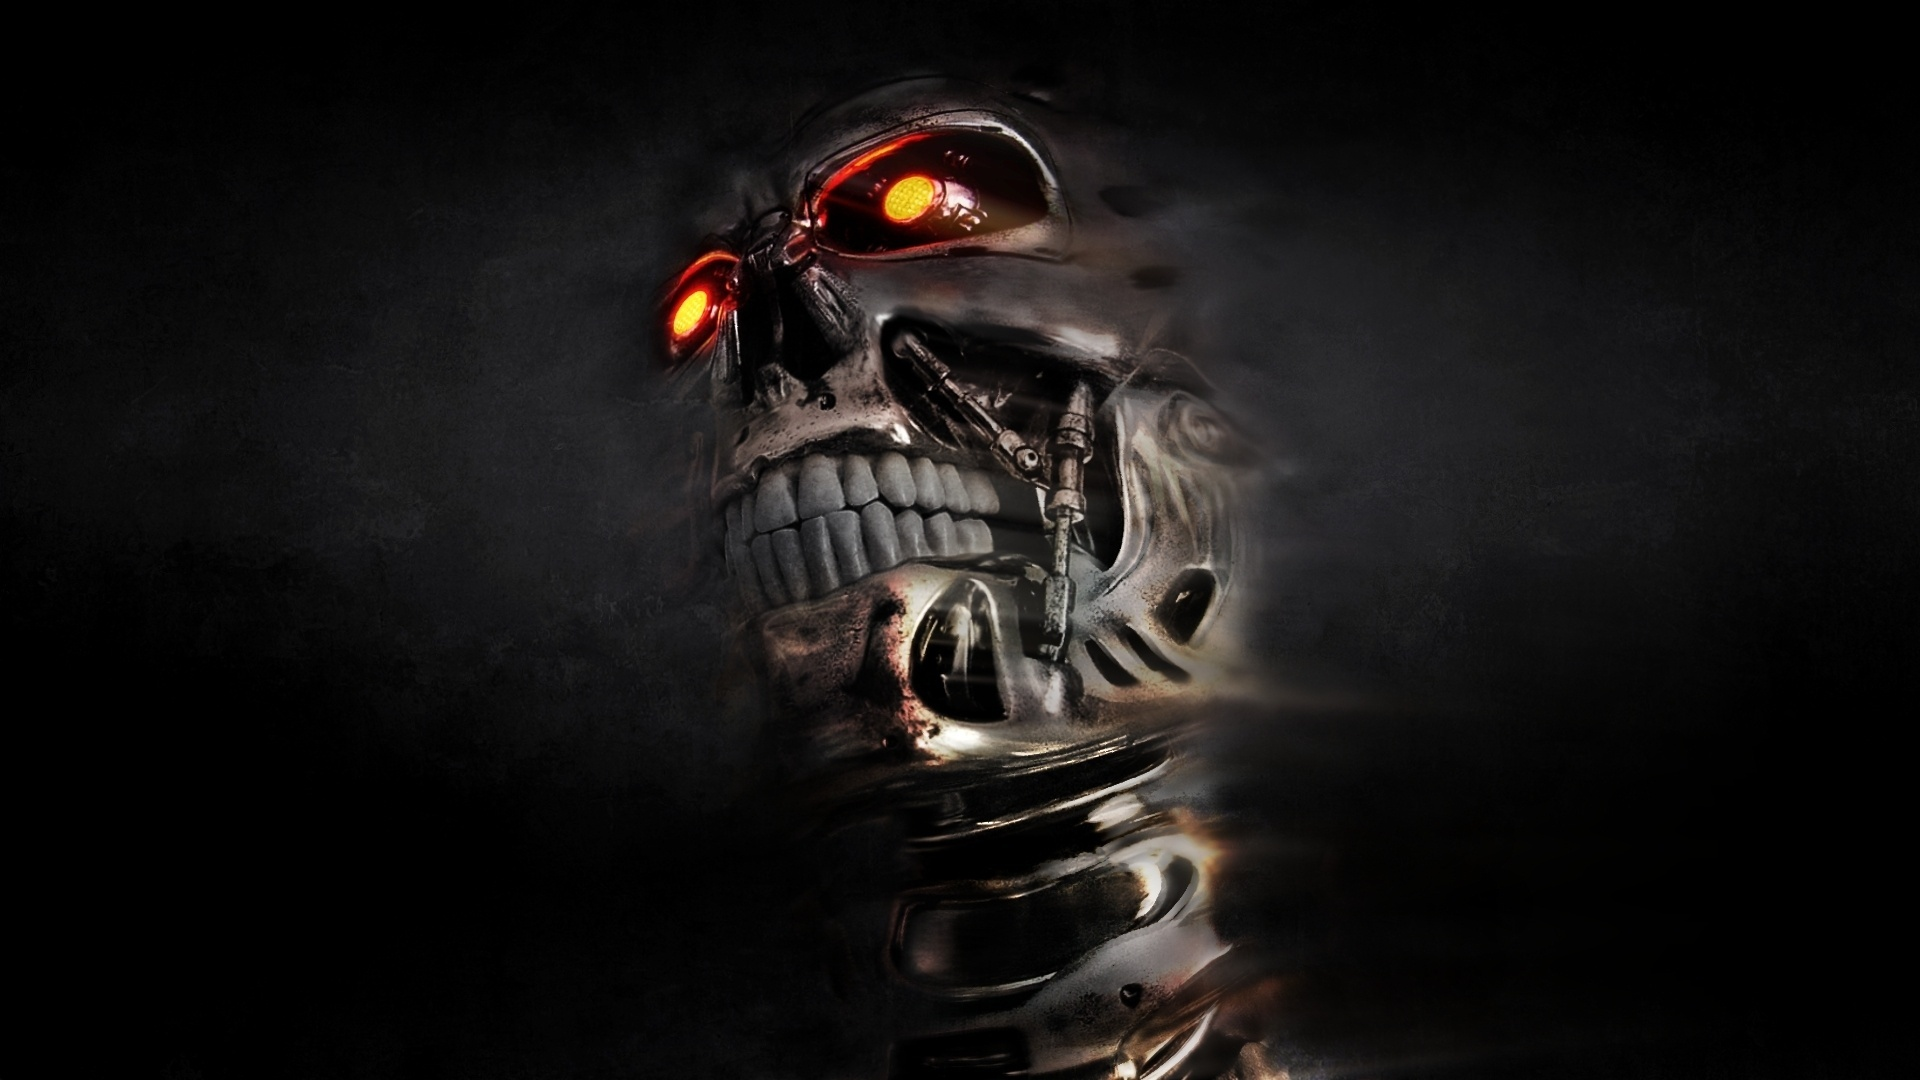 Skull Wallpapers   Desktop Backgrounds 1920x1080